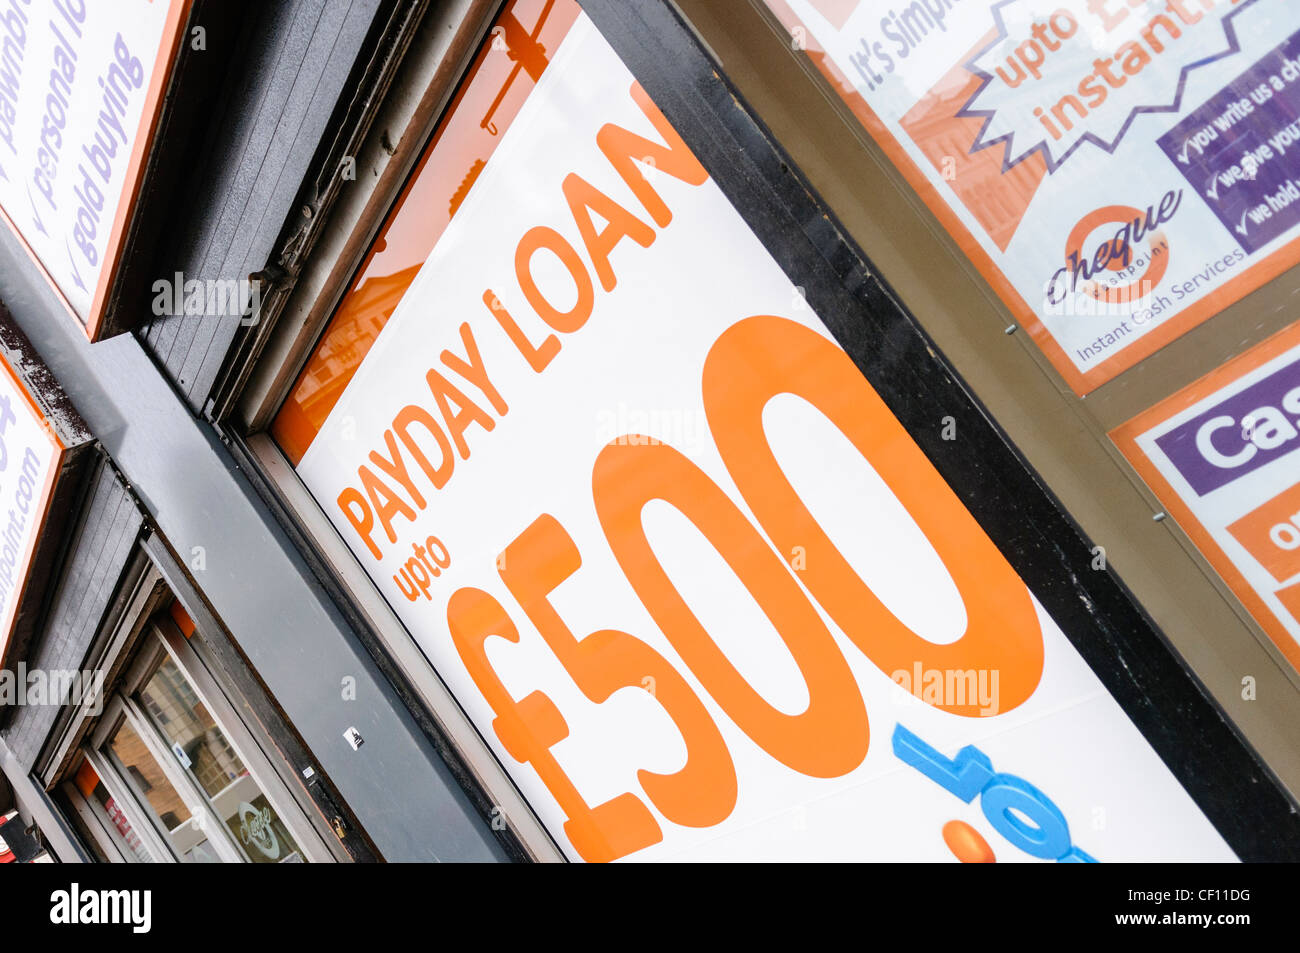 No fax payday loans savings account image 6